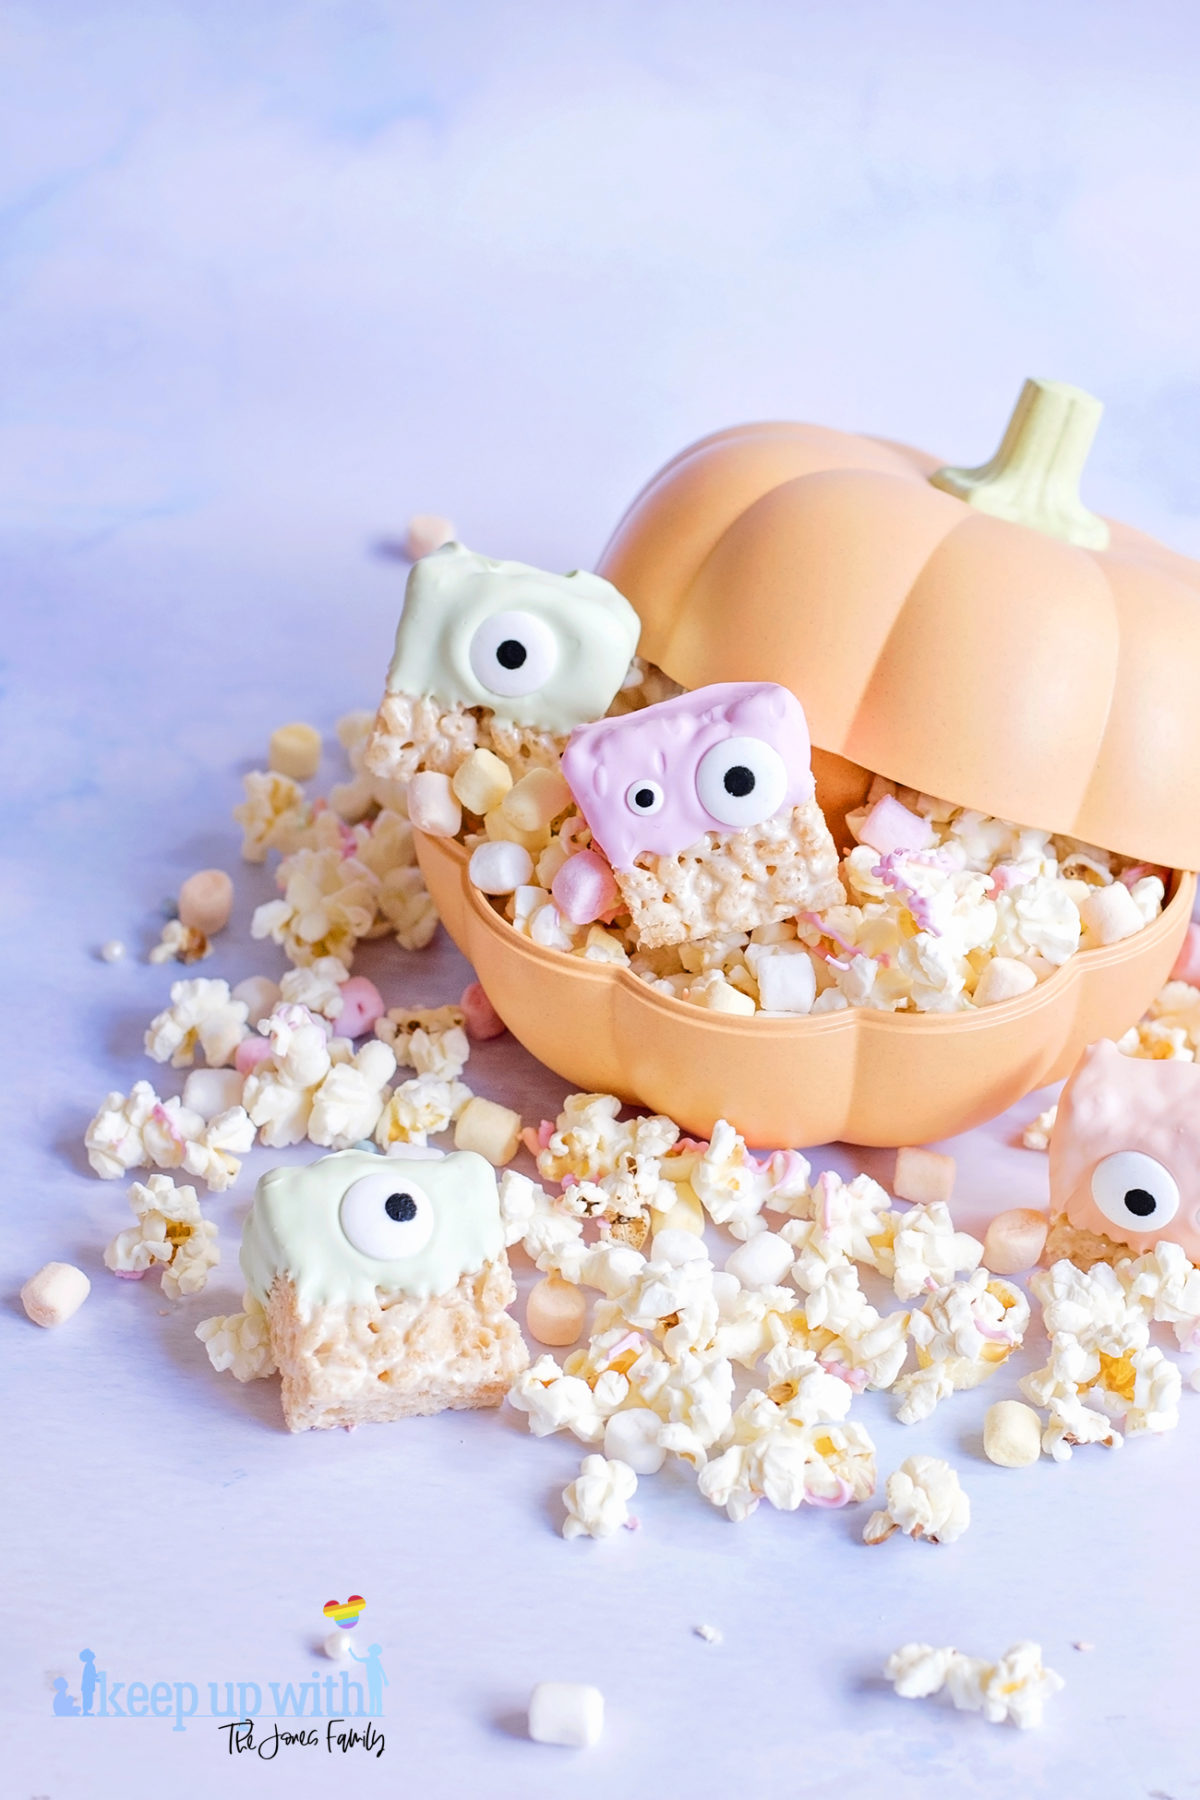 Image shows pastel coloured fun food rice krispie aliens or rice krispie monsters sat in a big orange pumpkin container filled with popcorn, which is spilling out.  Image by Sara-Jayne from Keep Up With The Jones Family.